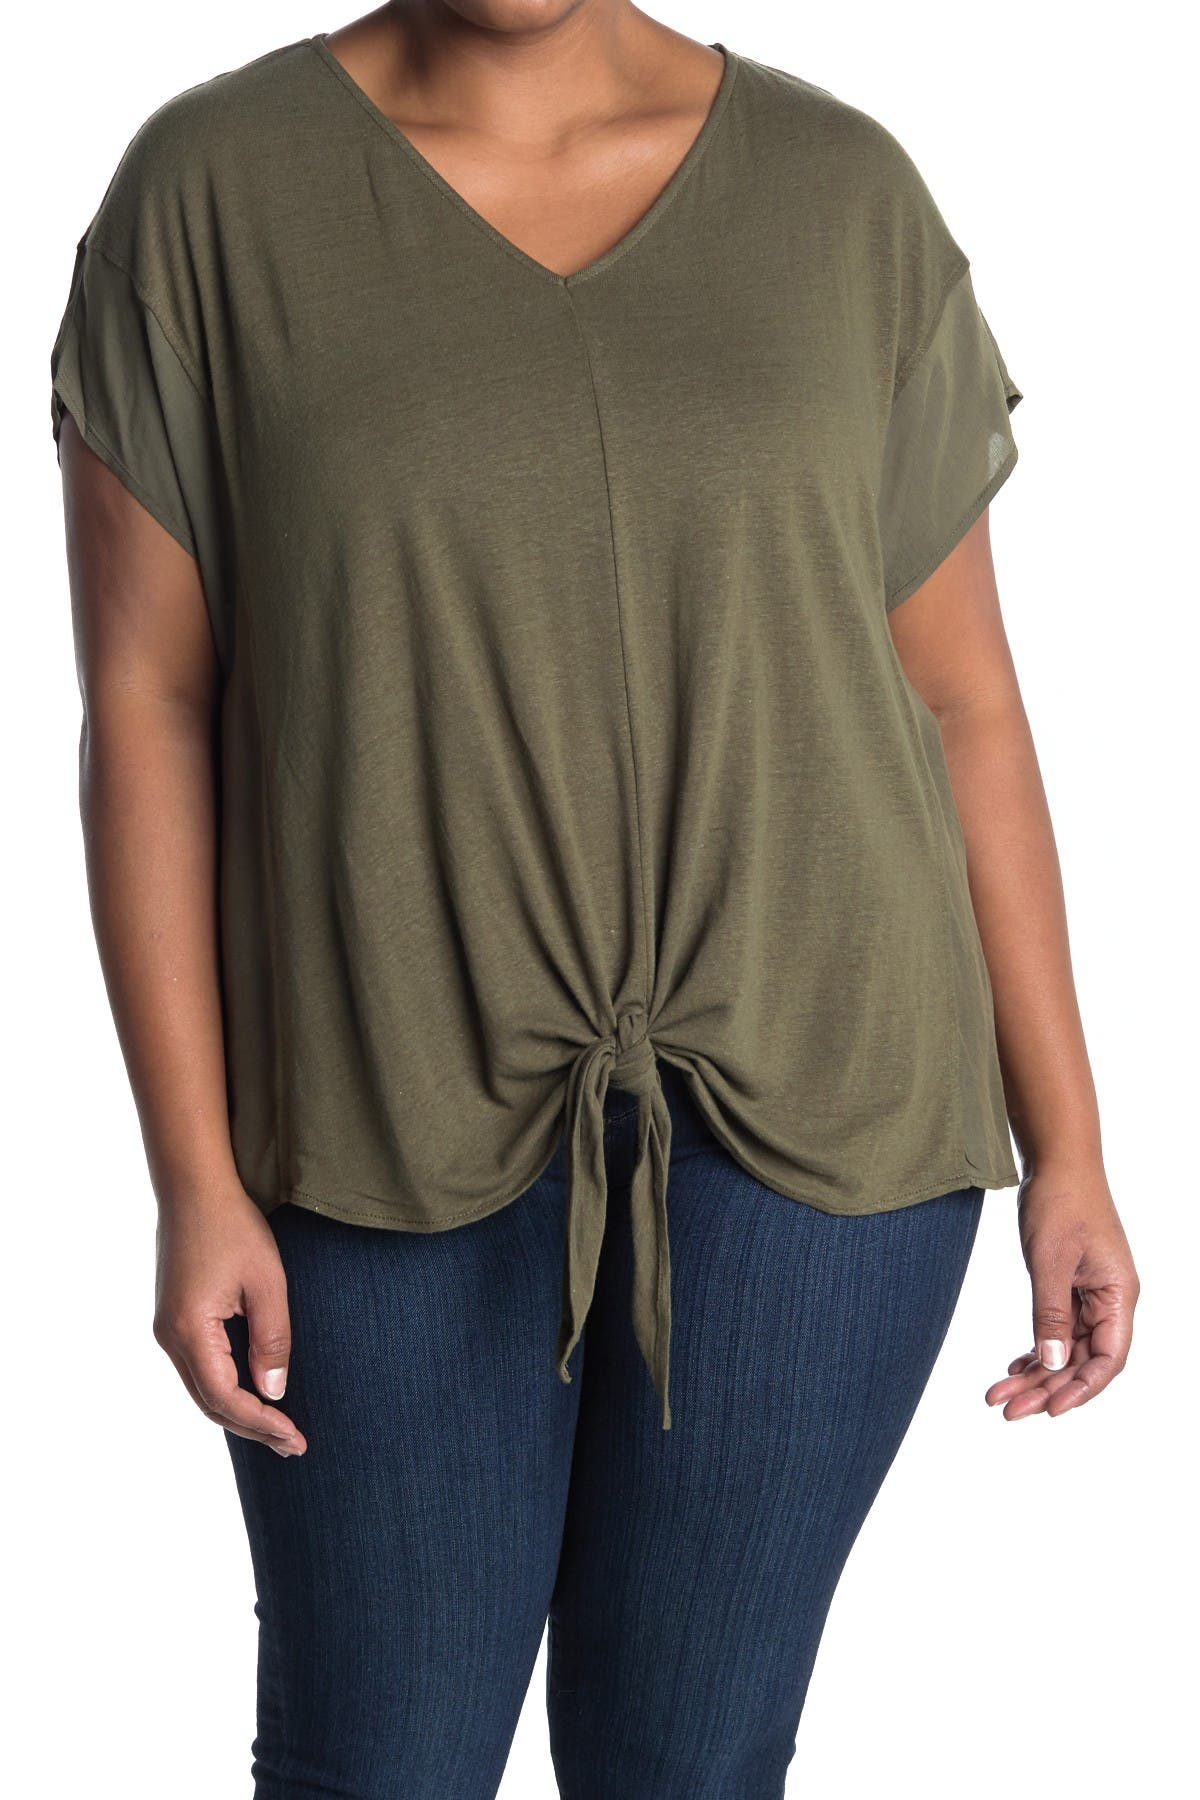 Image of Democracy Extended Short Sleeve V-Neck Tie Front Blouse